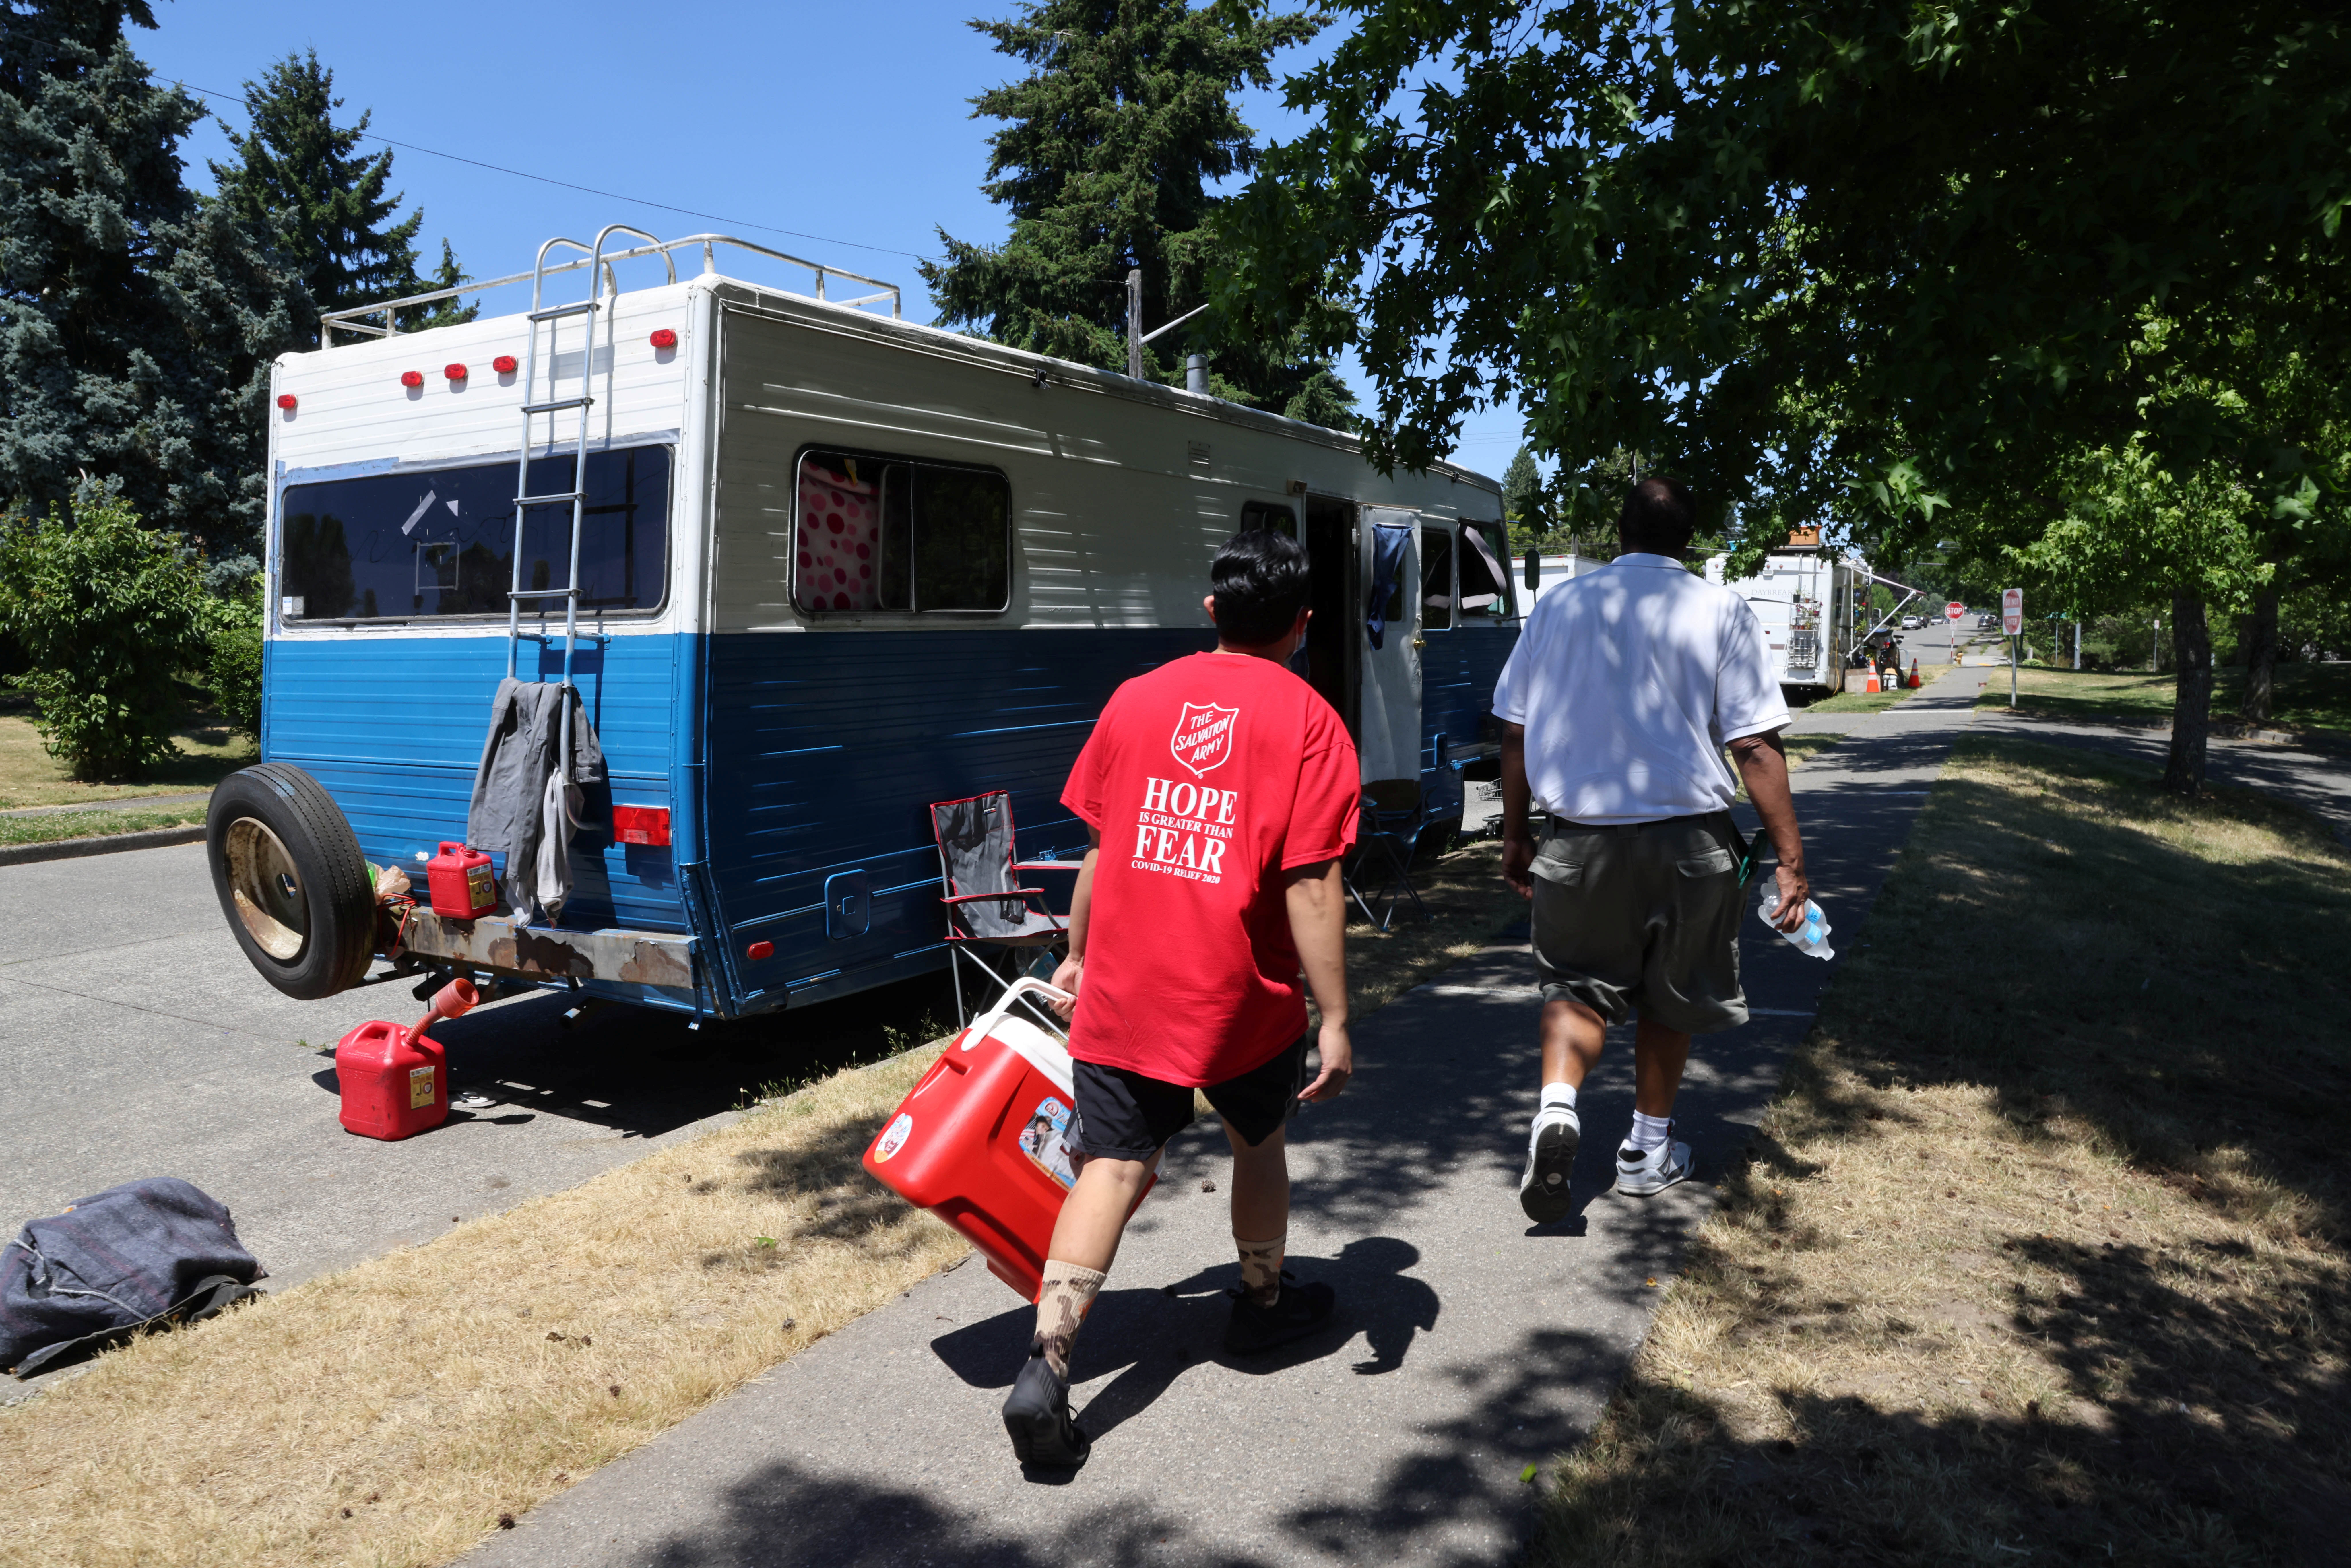 Shanton Alcaraz and Steve Huntley from the Salvation Army Northwest Division hand out water to people who might need it and invite them to their nearby cooling center for food and beverages during a heat wave in Seattle, Washington, U.S., June 27, 2021. REUTERS/Karen Ducey